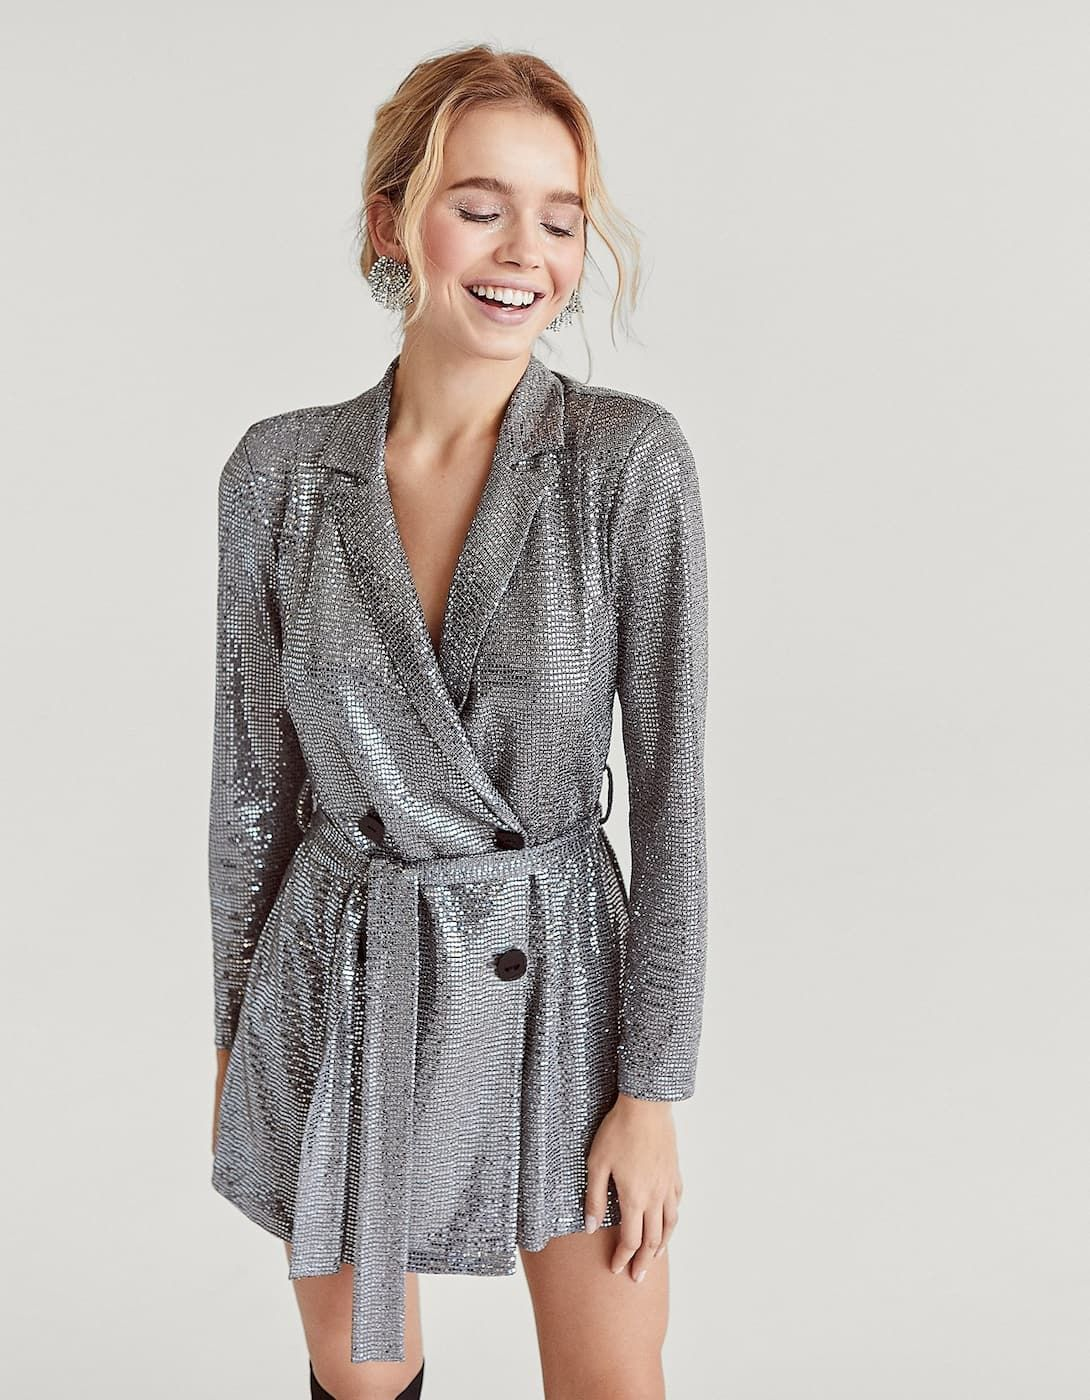 37049f302961 Silver sequinned blazer dress - Dresses | Stradivarius Spain - Islas  Canarias